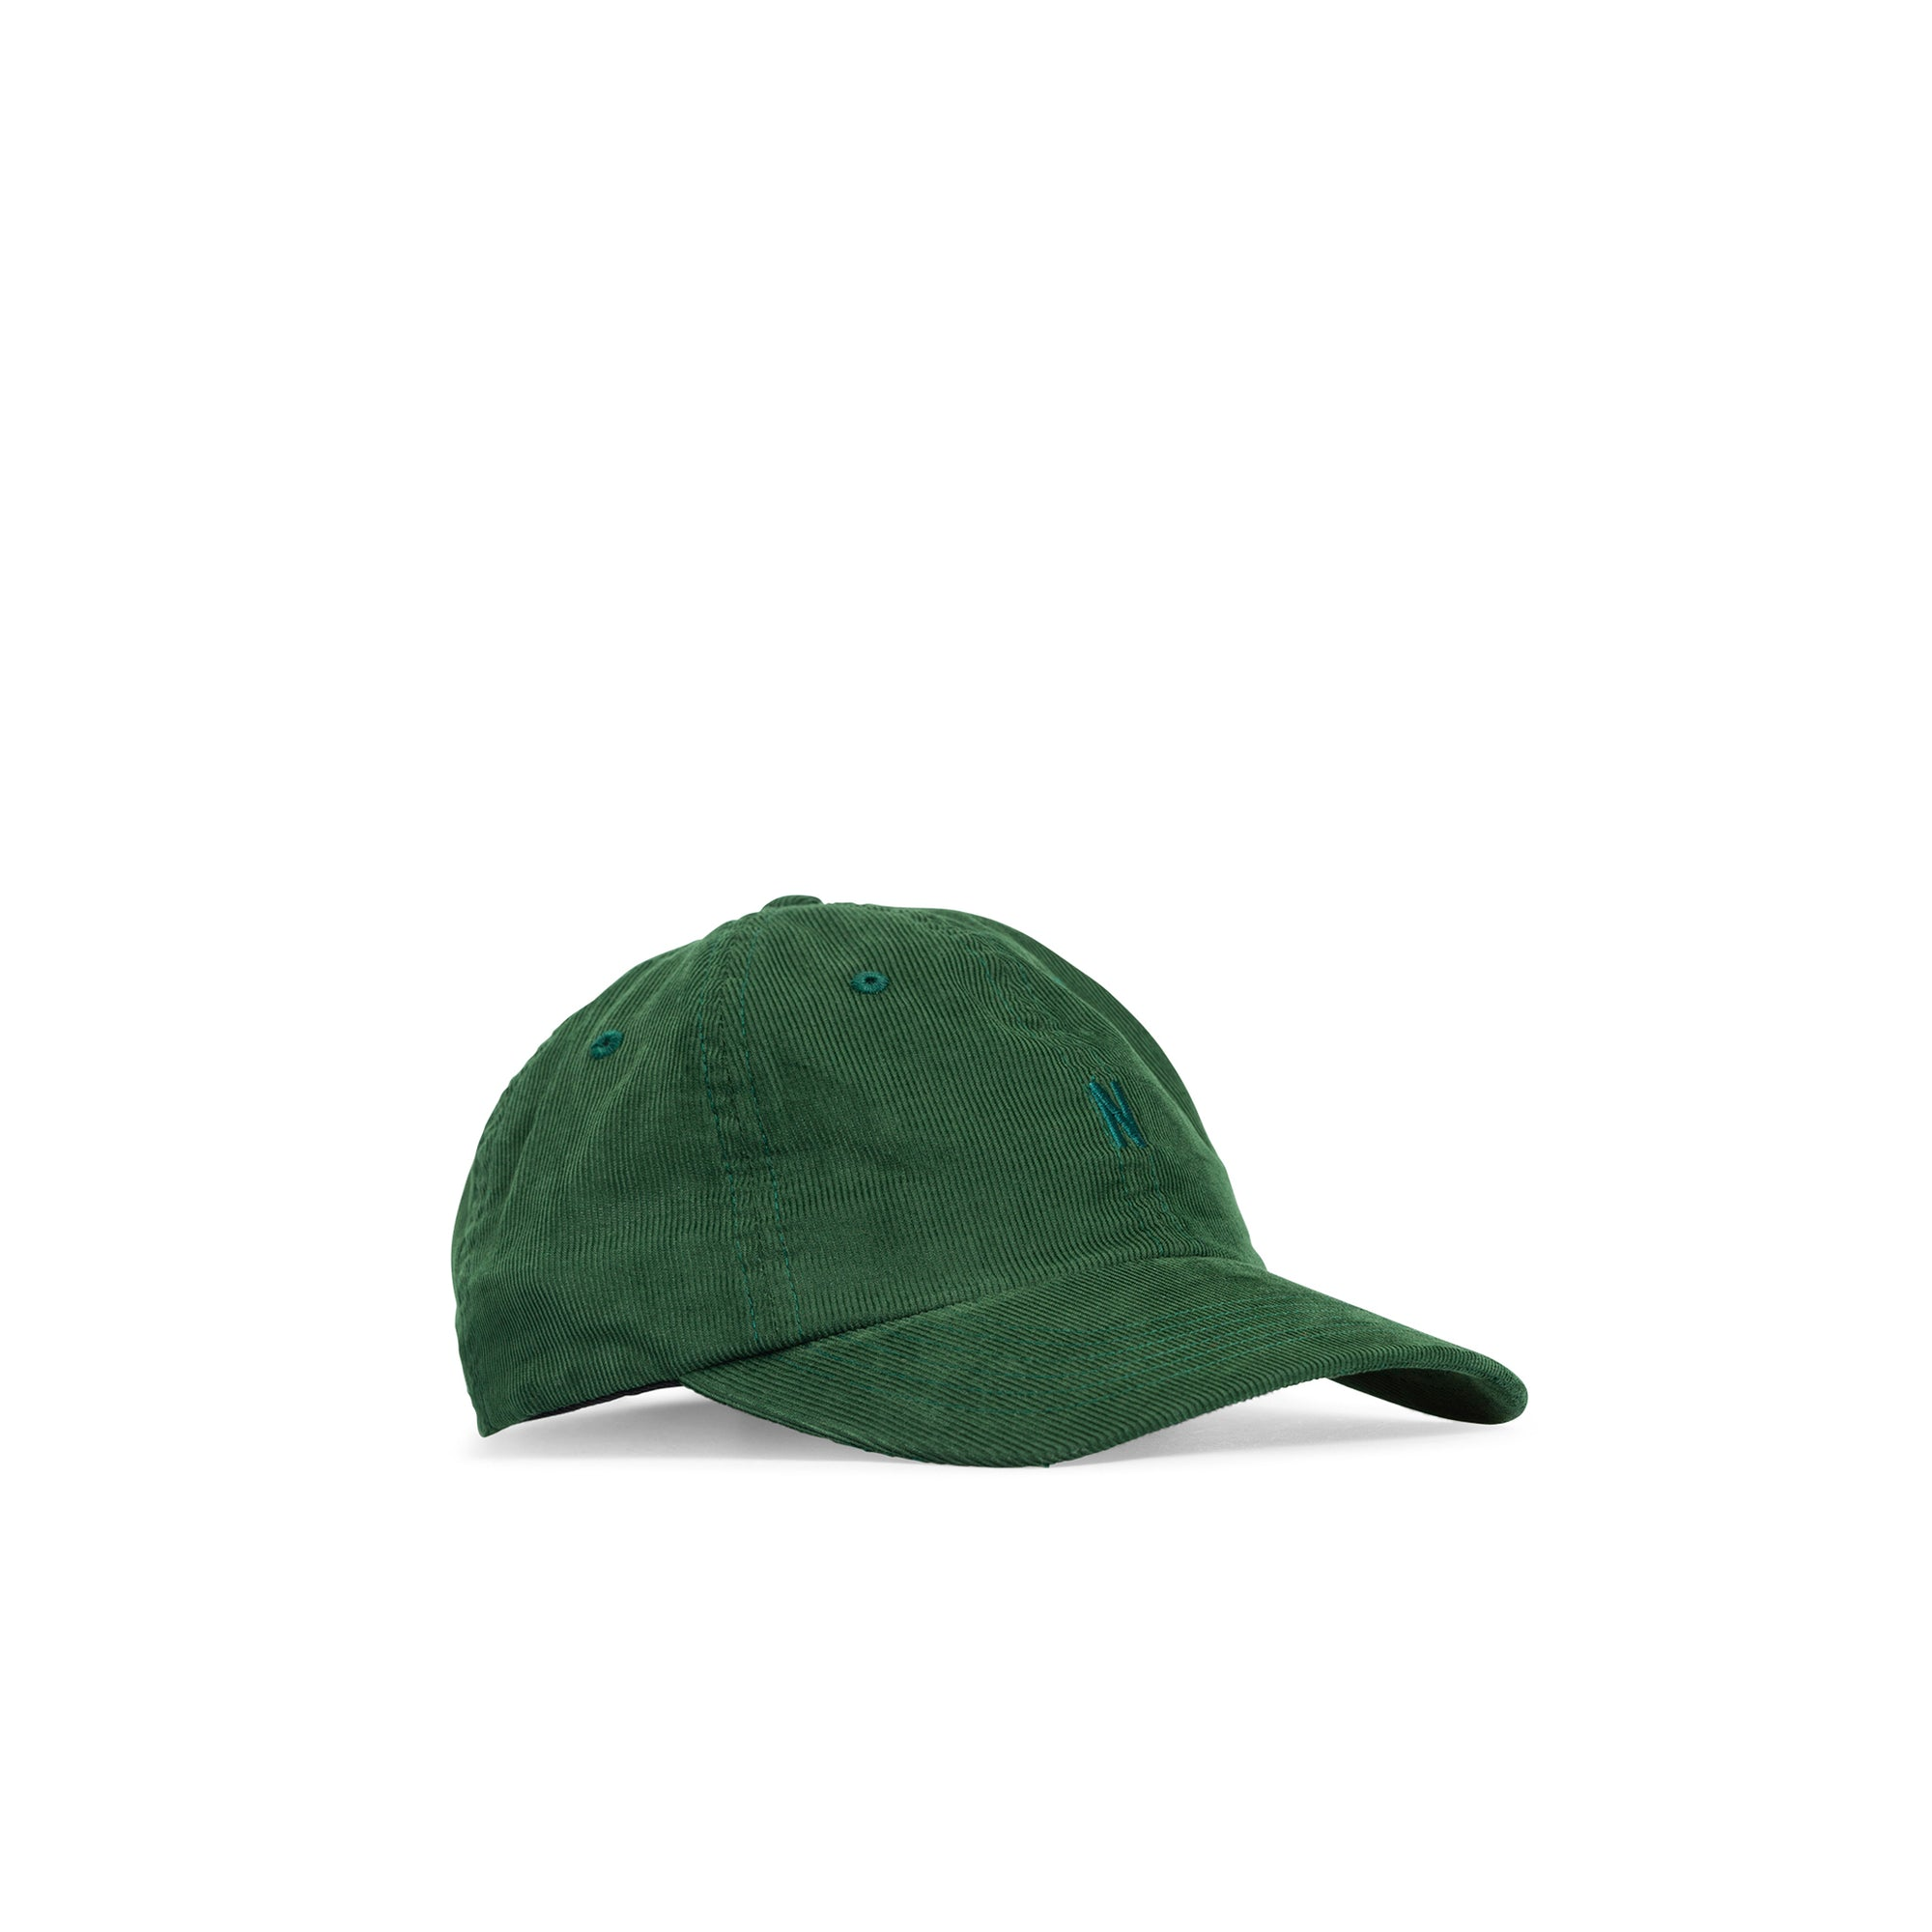 Norse Projects Baby Corduroy Sports Cap: Dartmouth Green - The Union Project